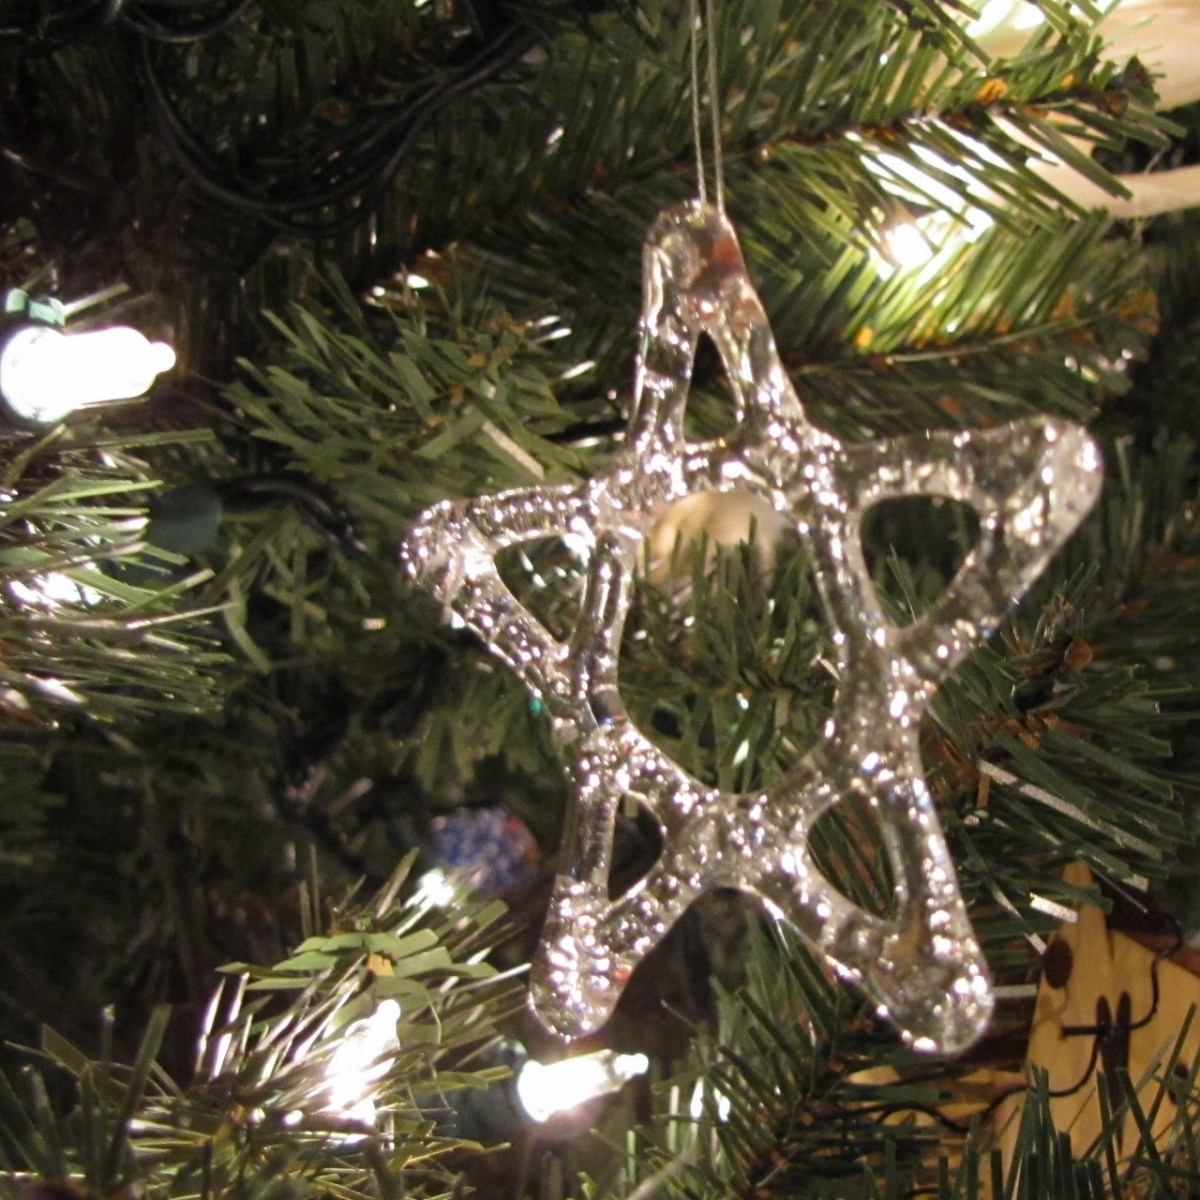 These clear glass stars are just right to add sparkle to an All-American Christmas tree.